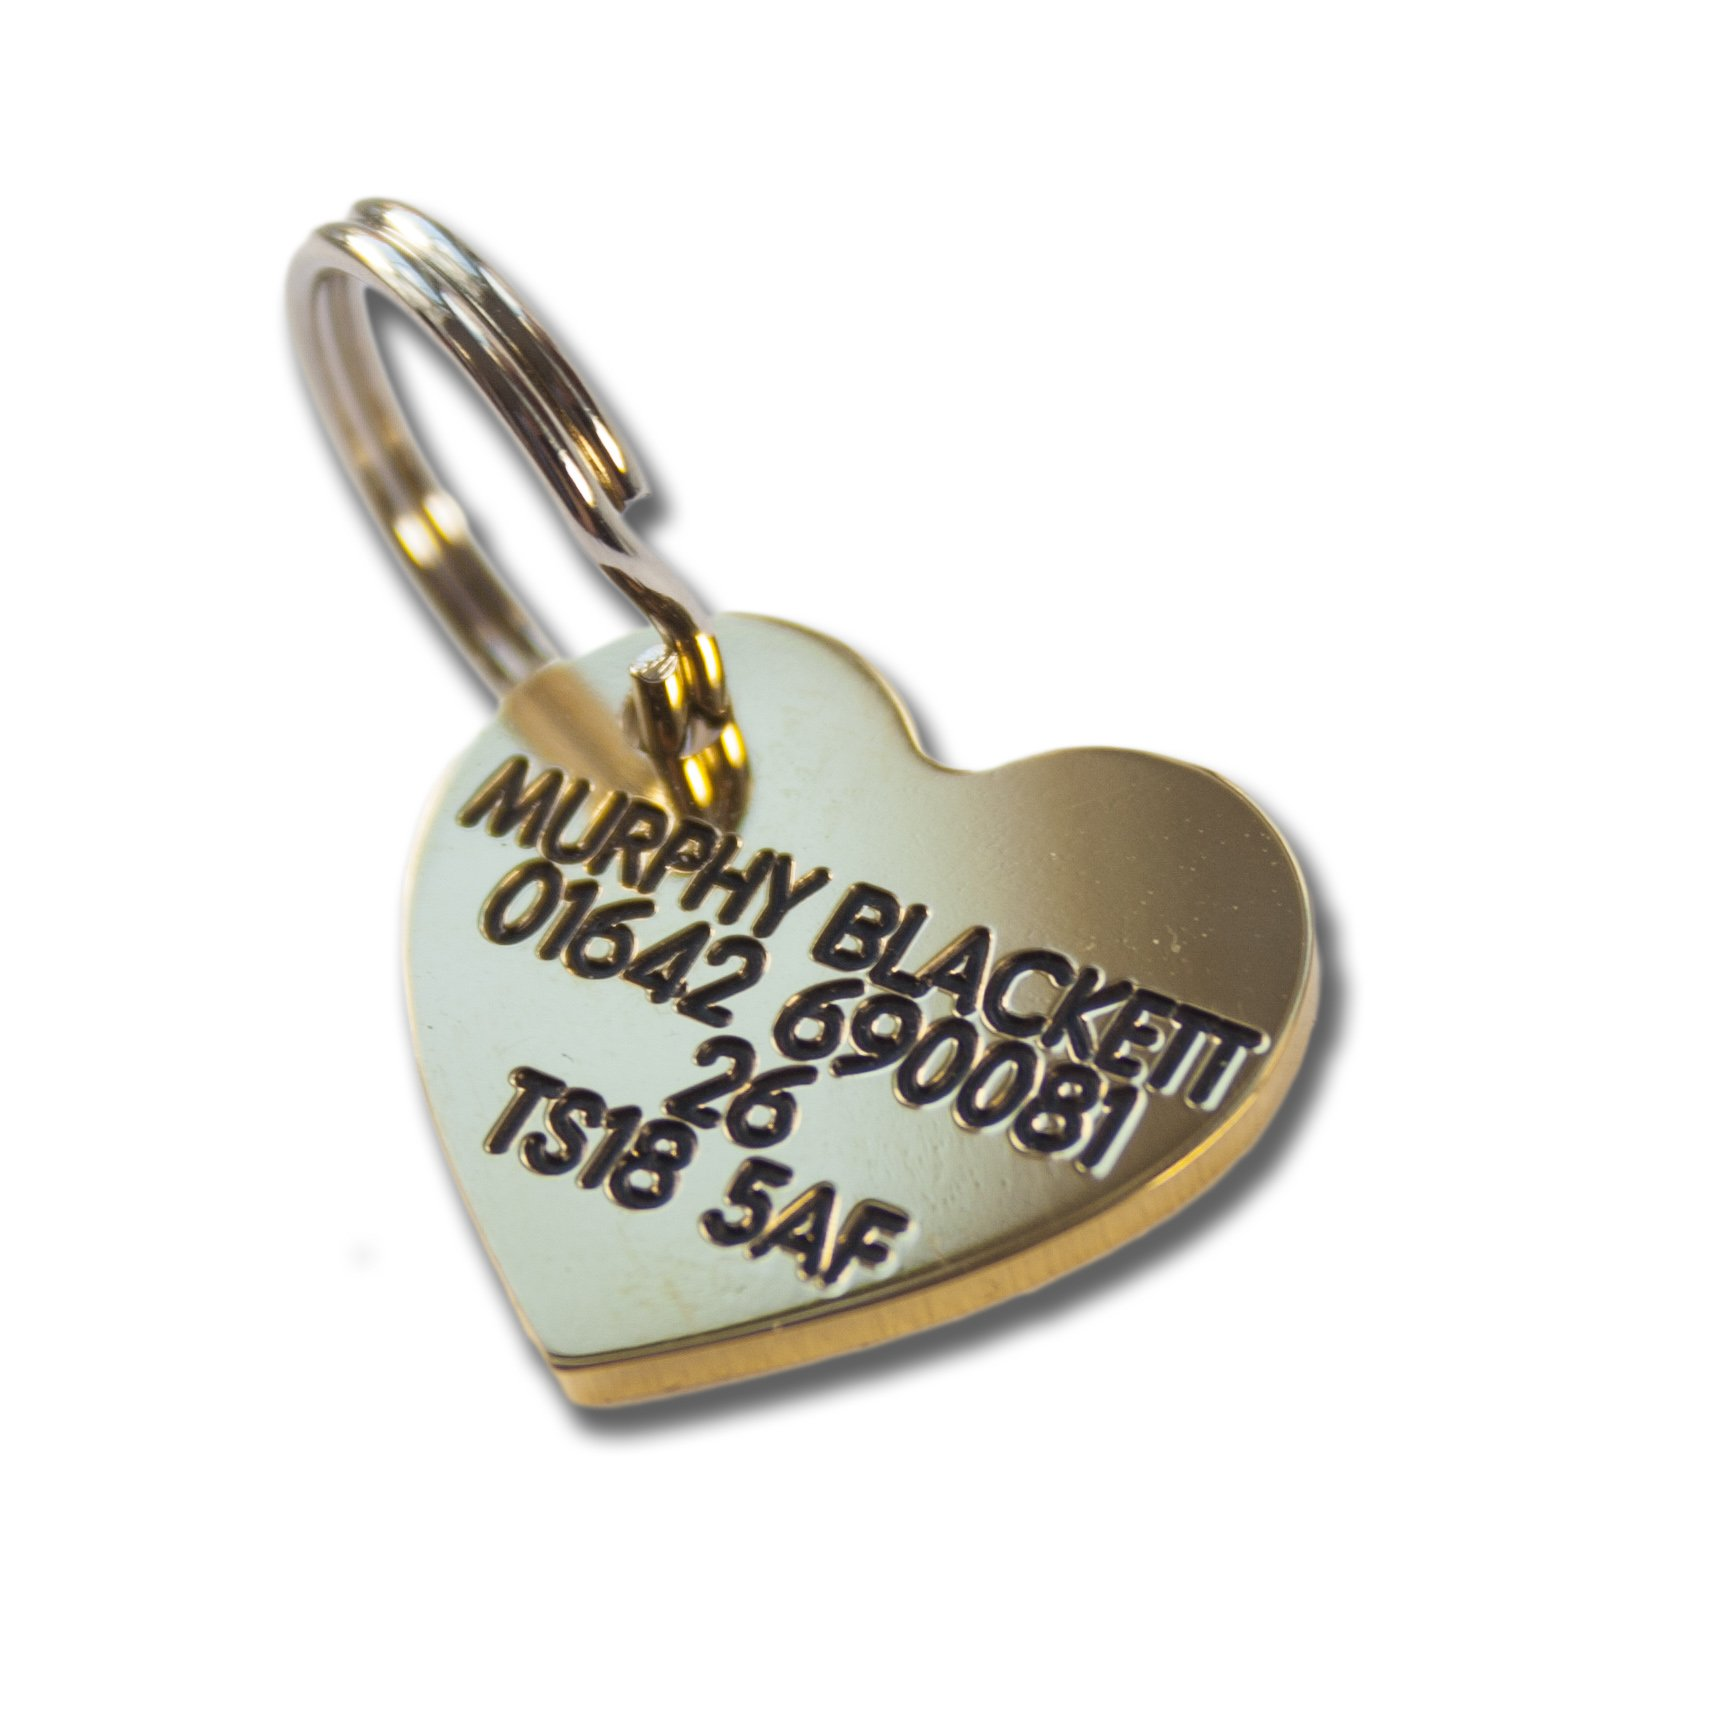 Deeply engraved solid brass 22mm heart shaped dog tag